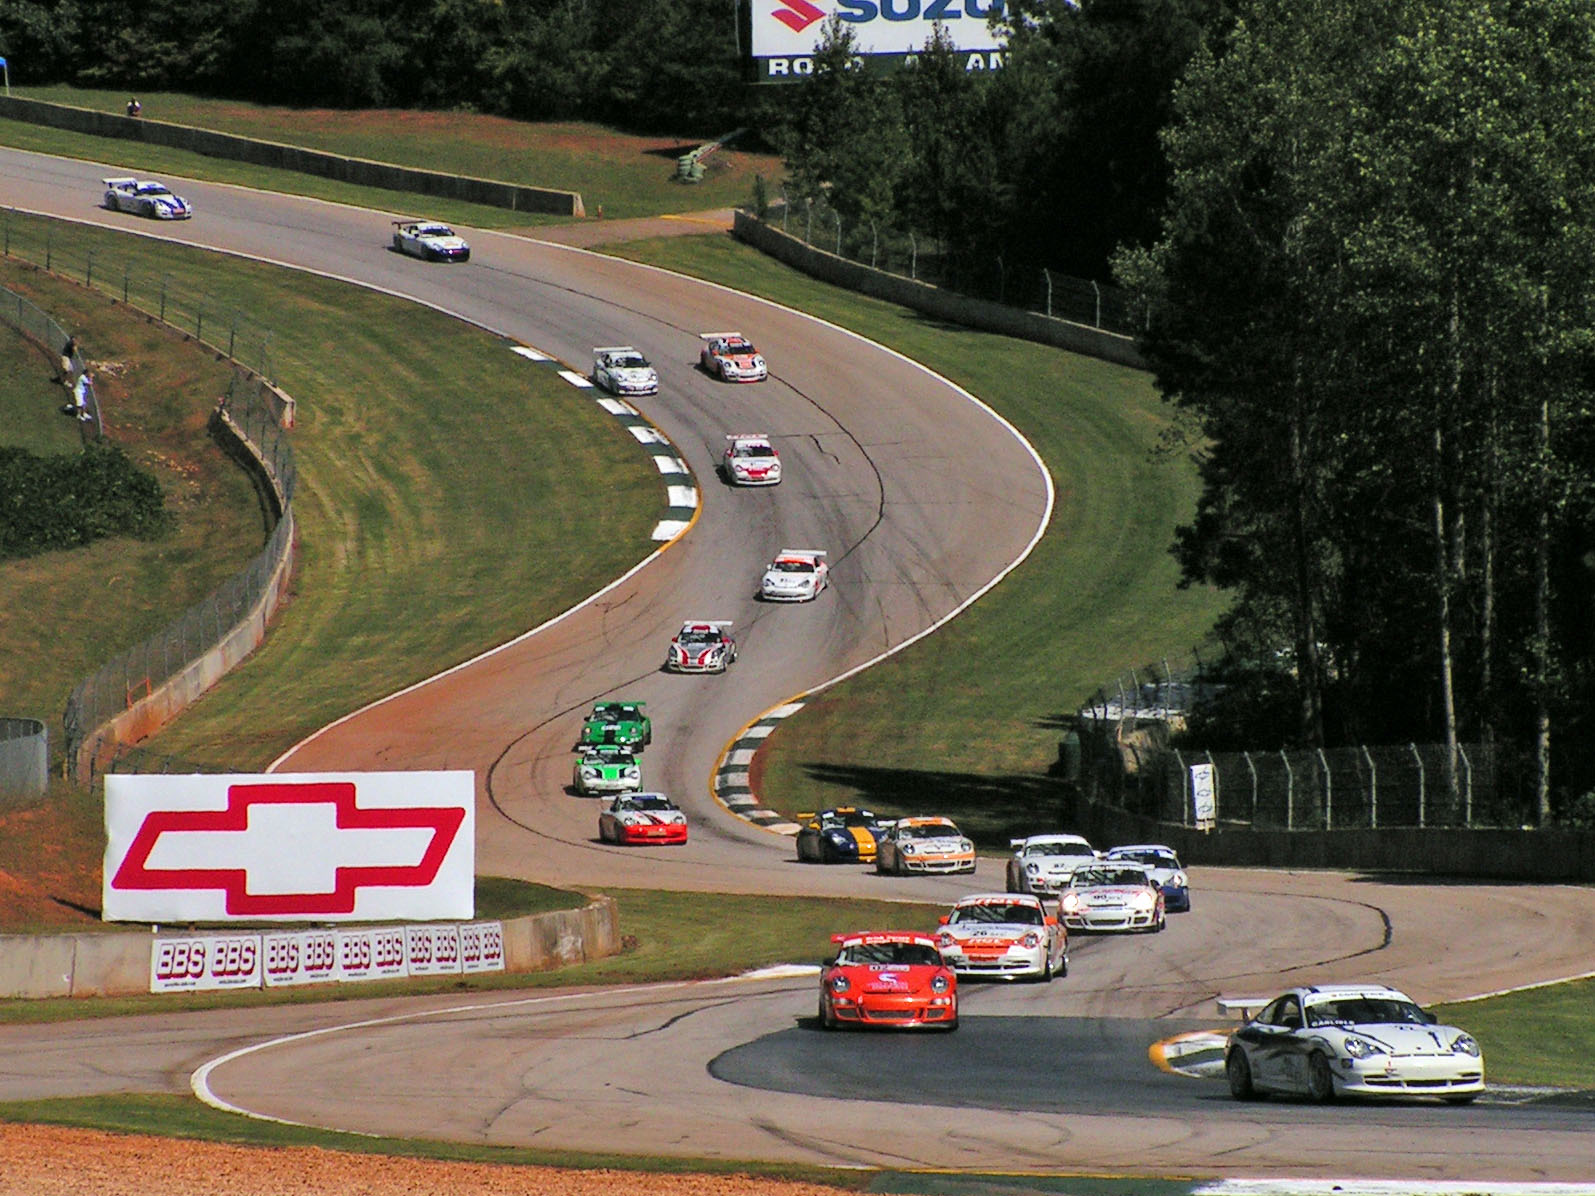 File Imsa Gt3 Cup Road Atlanta 2006 Jpg Wikimedia Commons